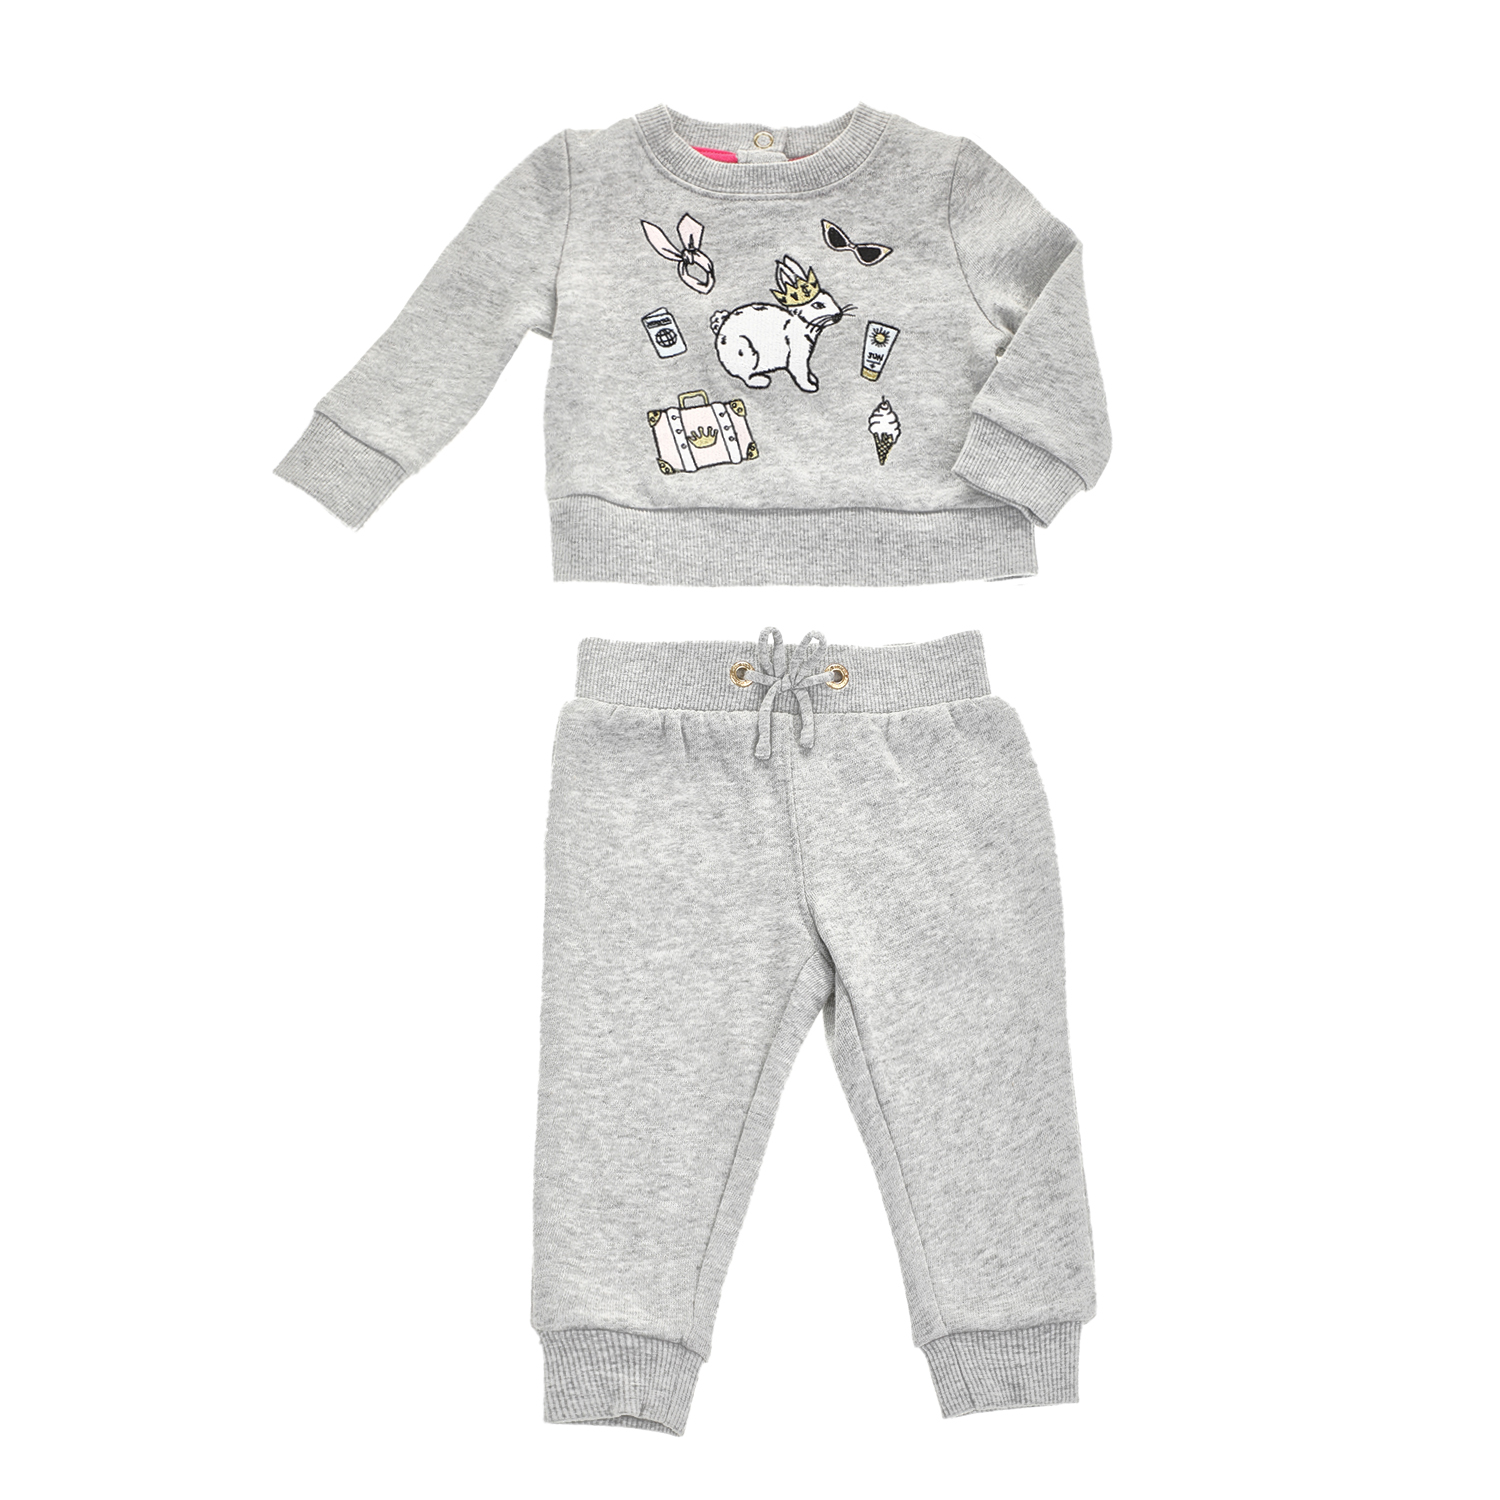 JUICY COUTURE KIDS - Βρεφικό σετ JUICY COUTURE BUNNY γκρι